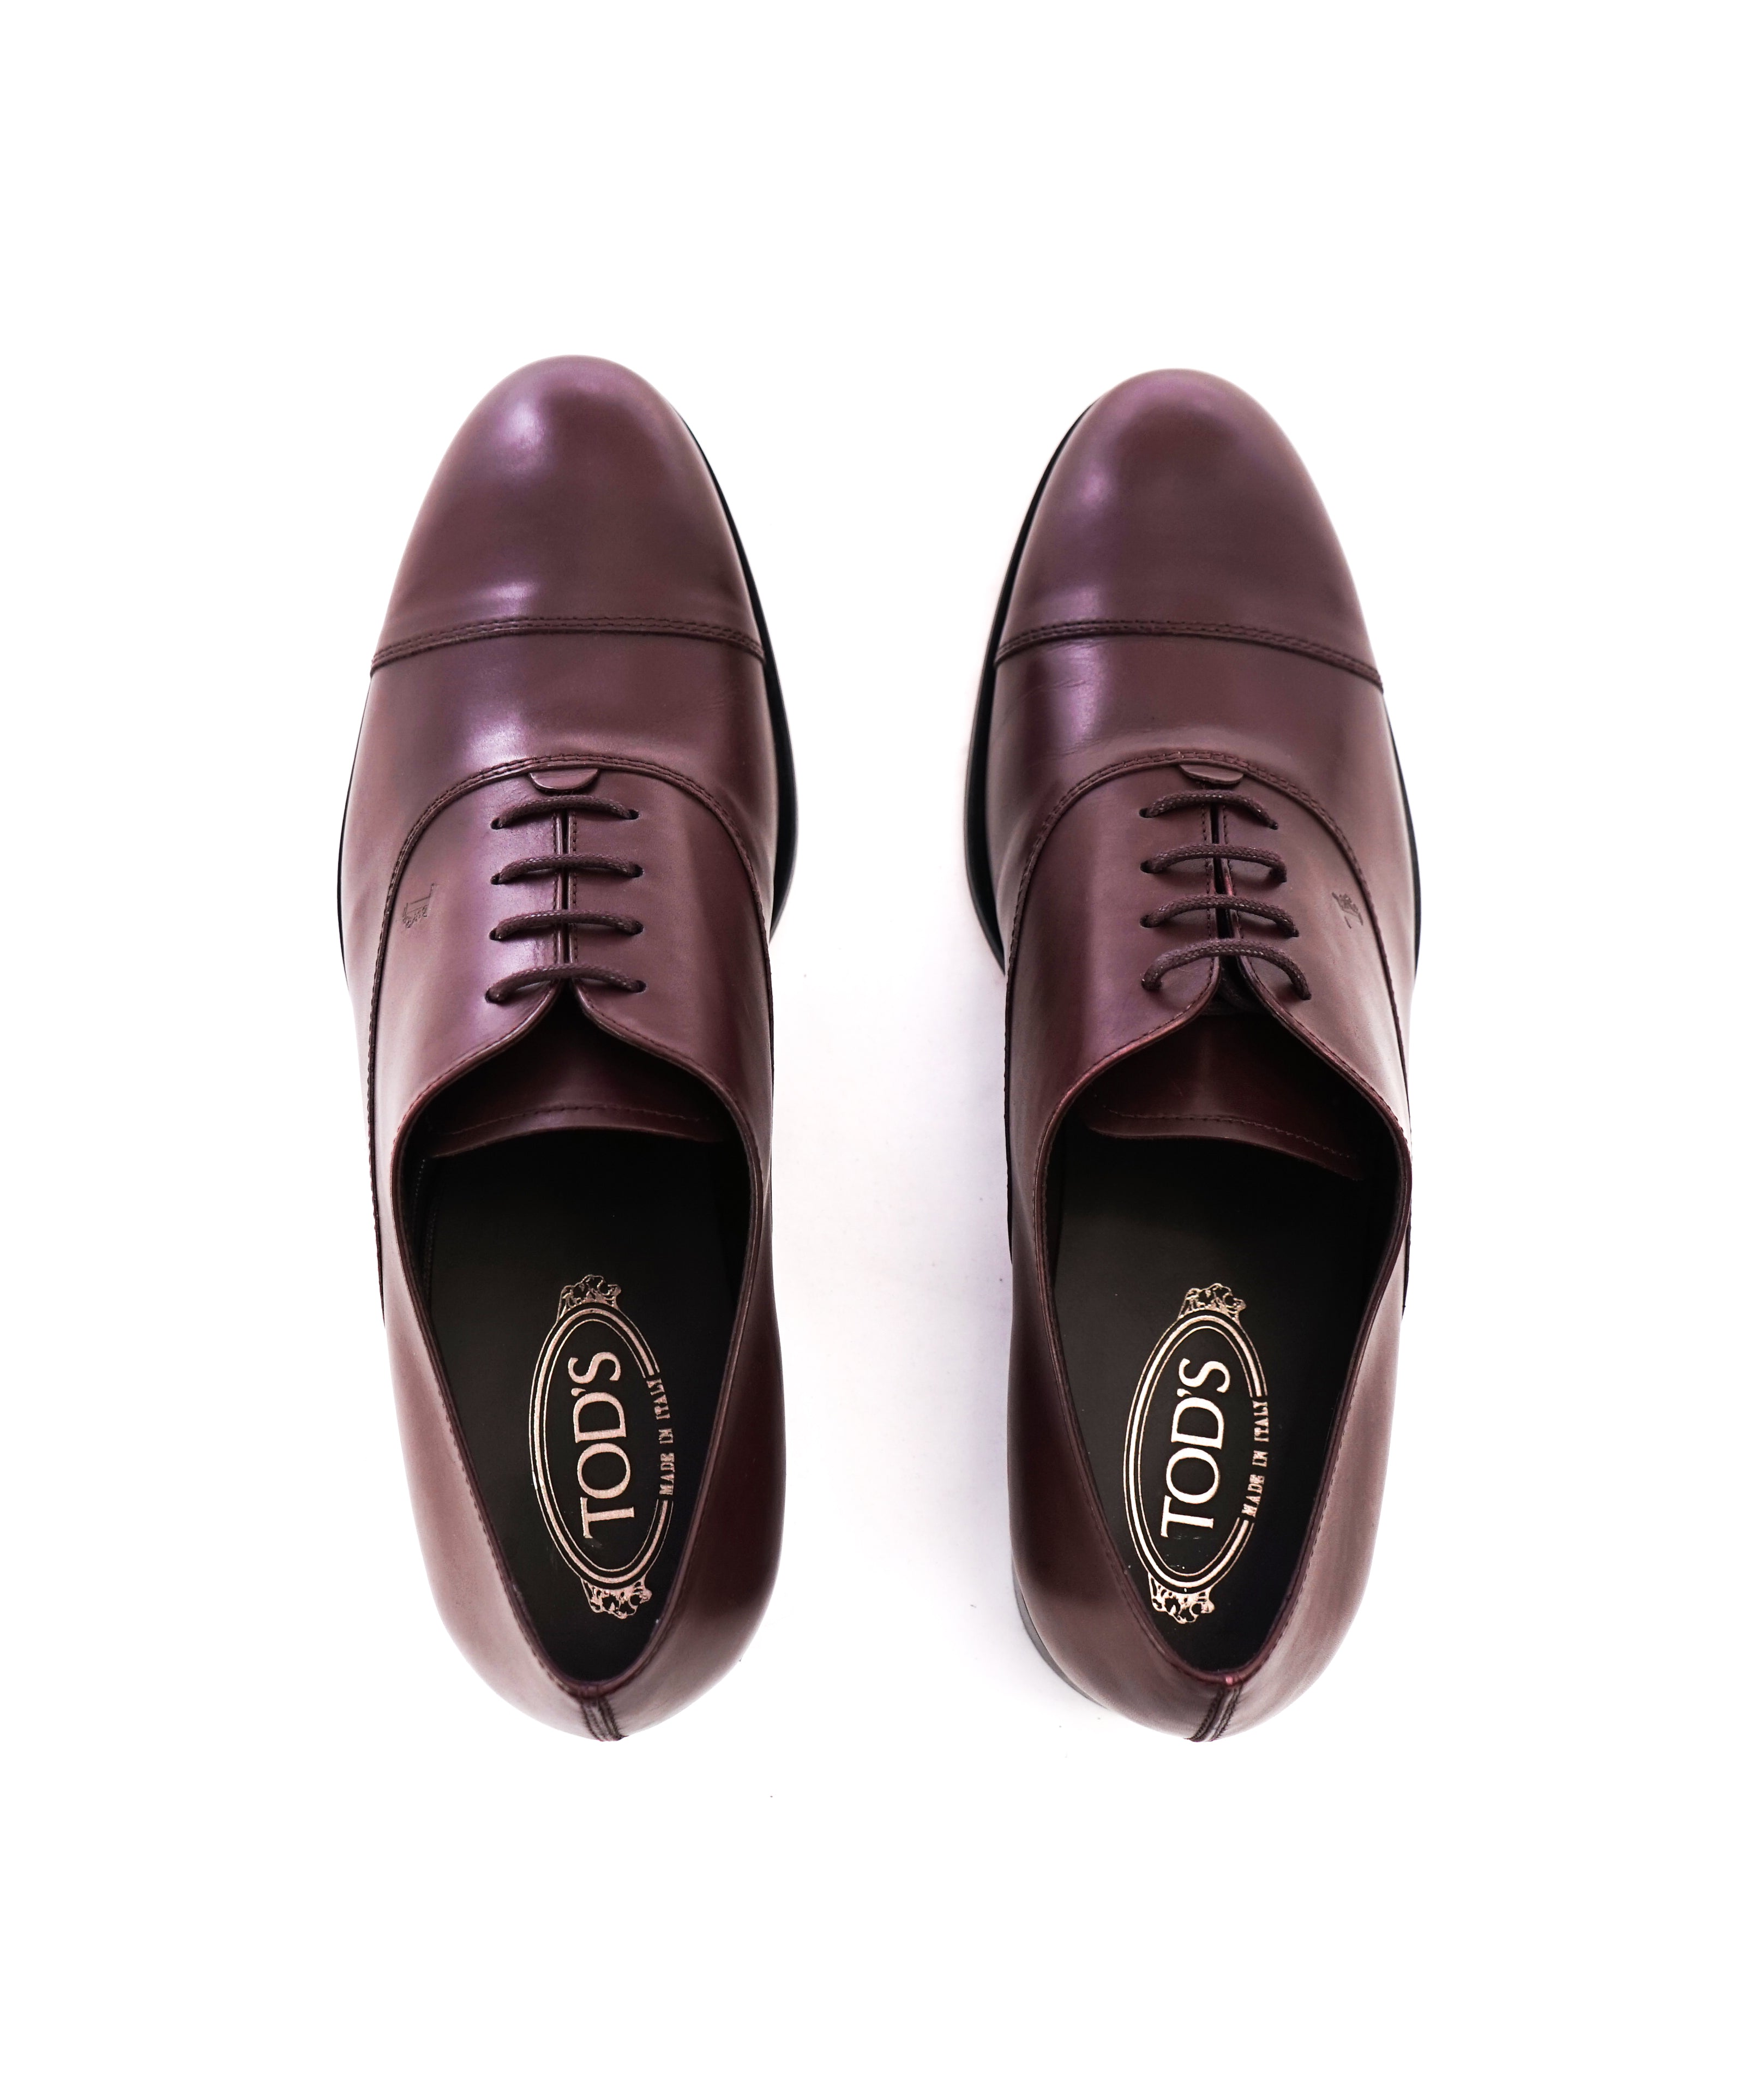 "TOD'S - Burgundy Oxblood Leather Oxfords ""LOGO"" Leather Sole- 11US"